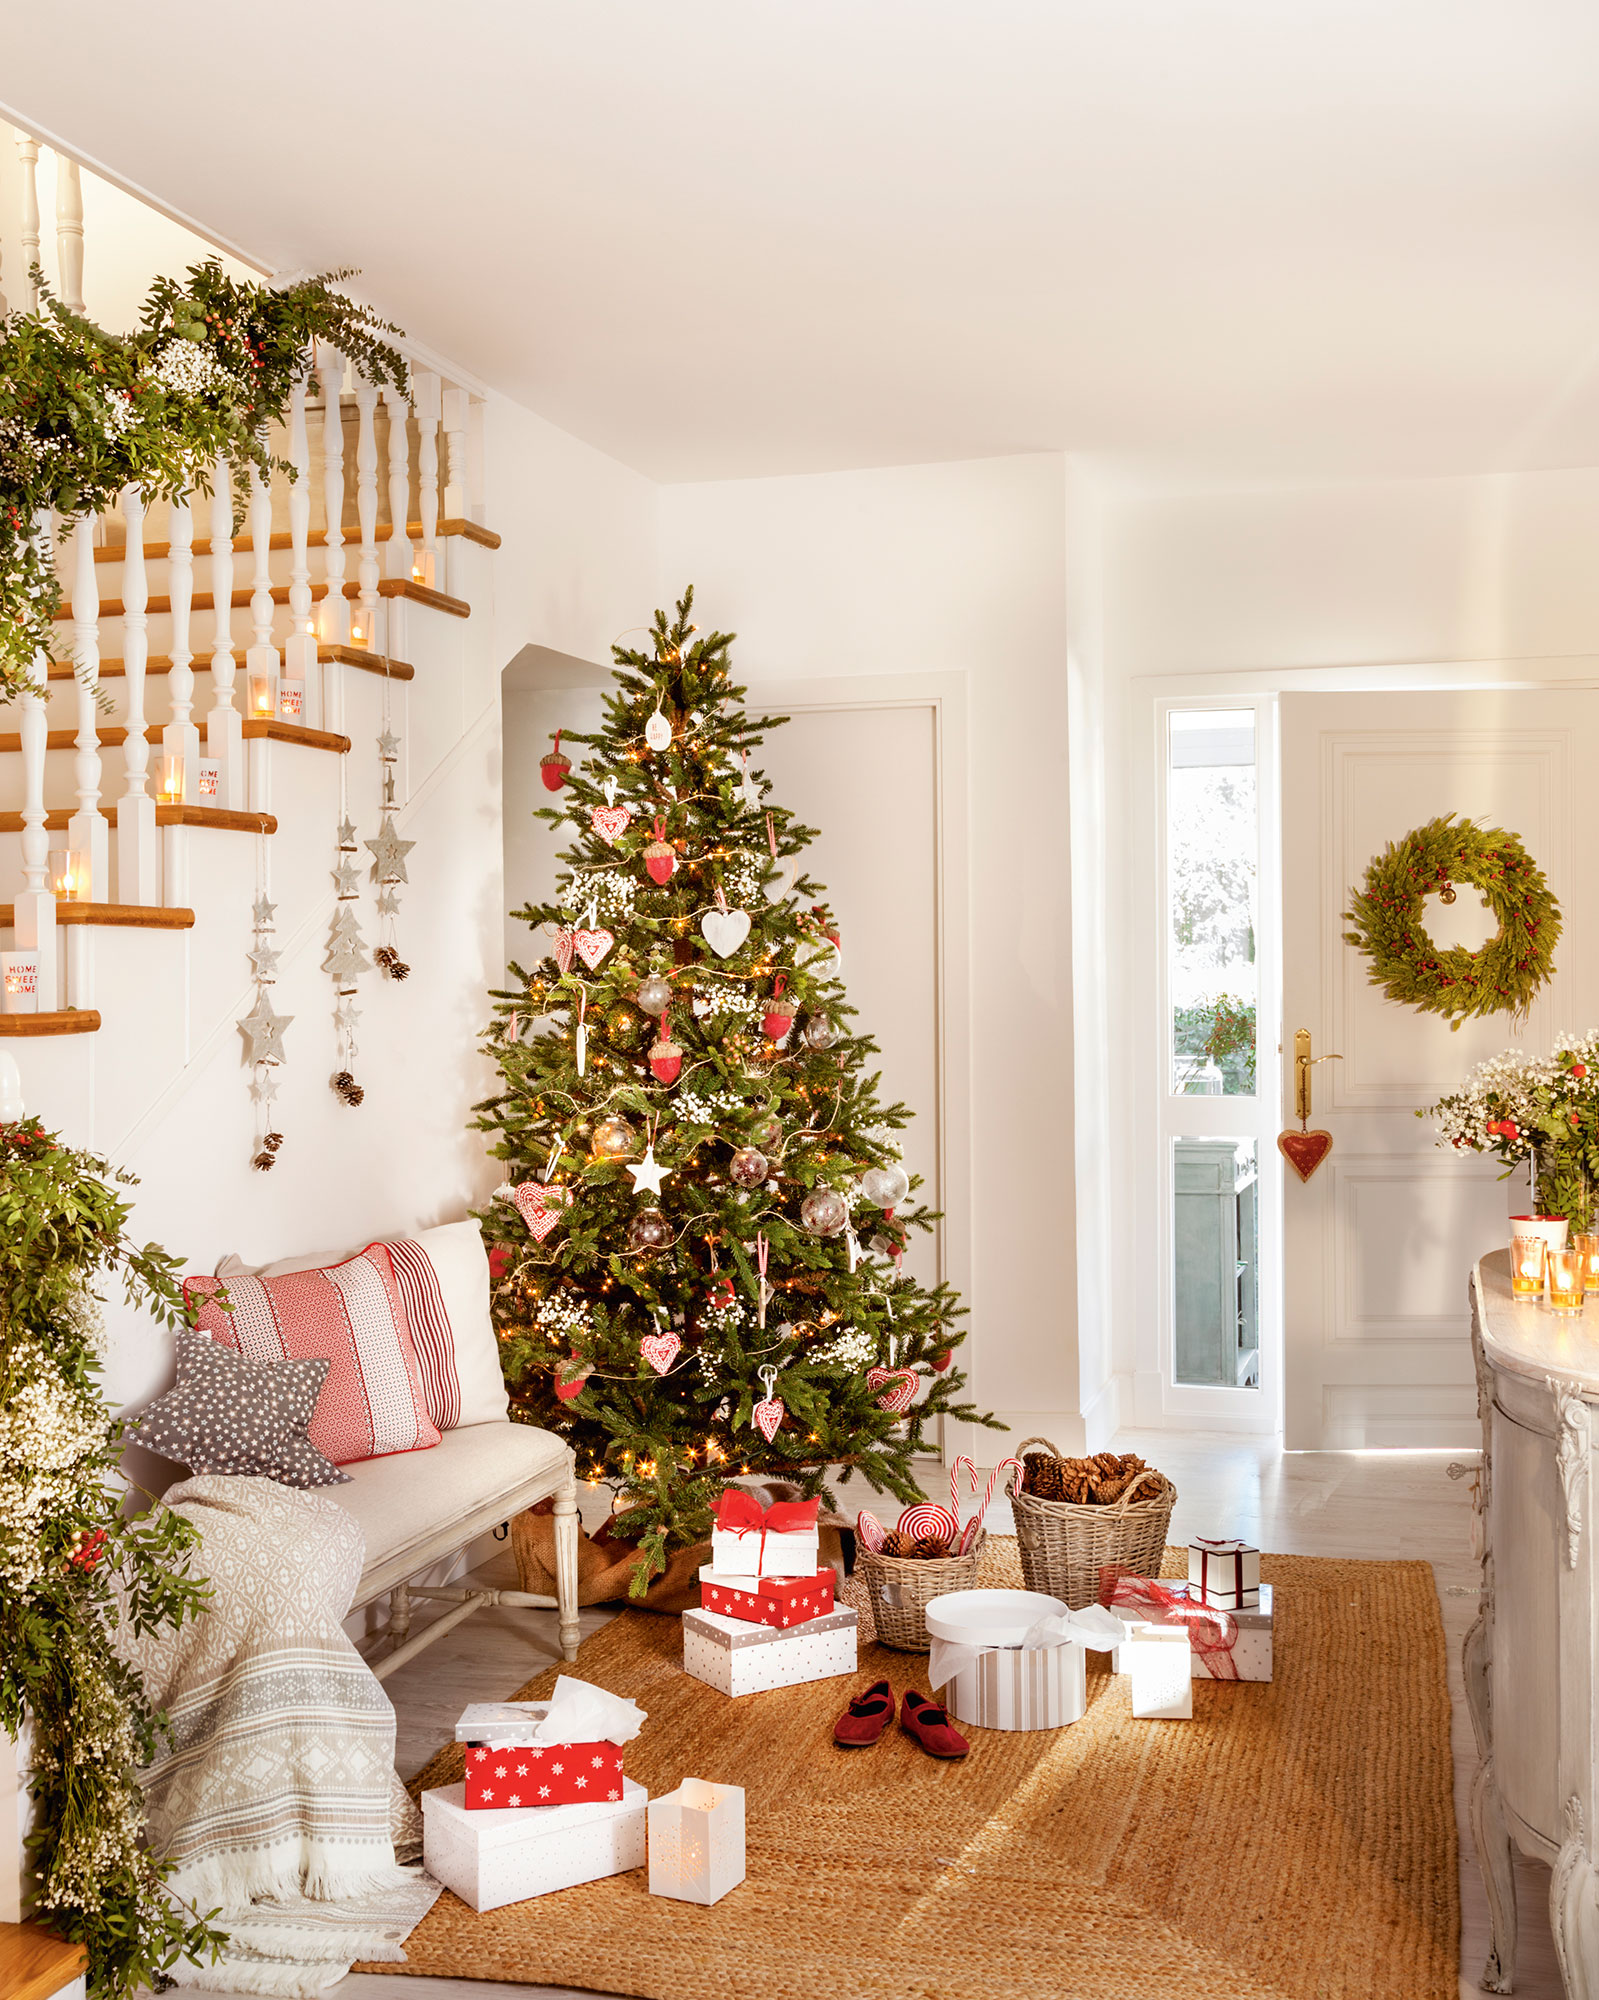 Navidad ideas para decorar de verde natural tu recibidor - Arbol navideno blanco decorado ...